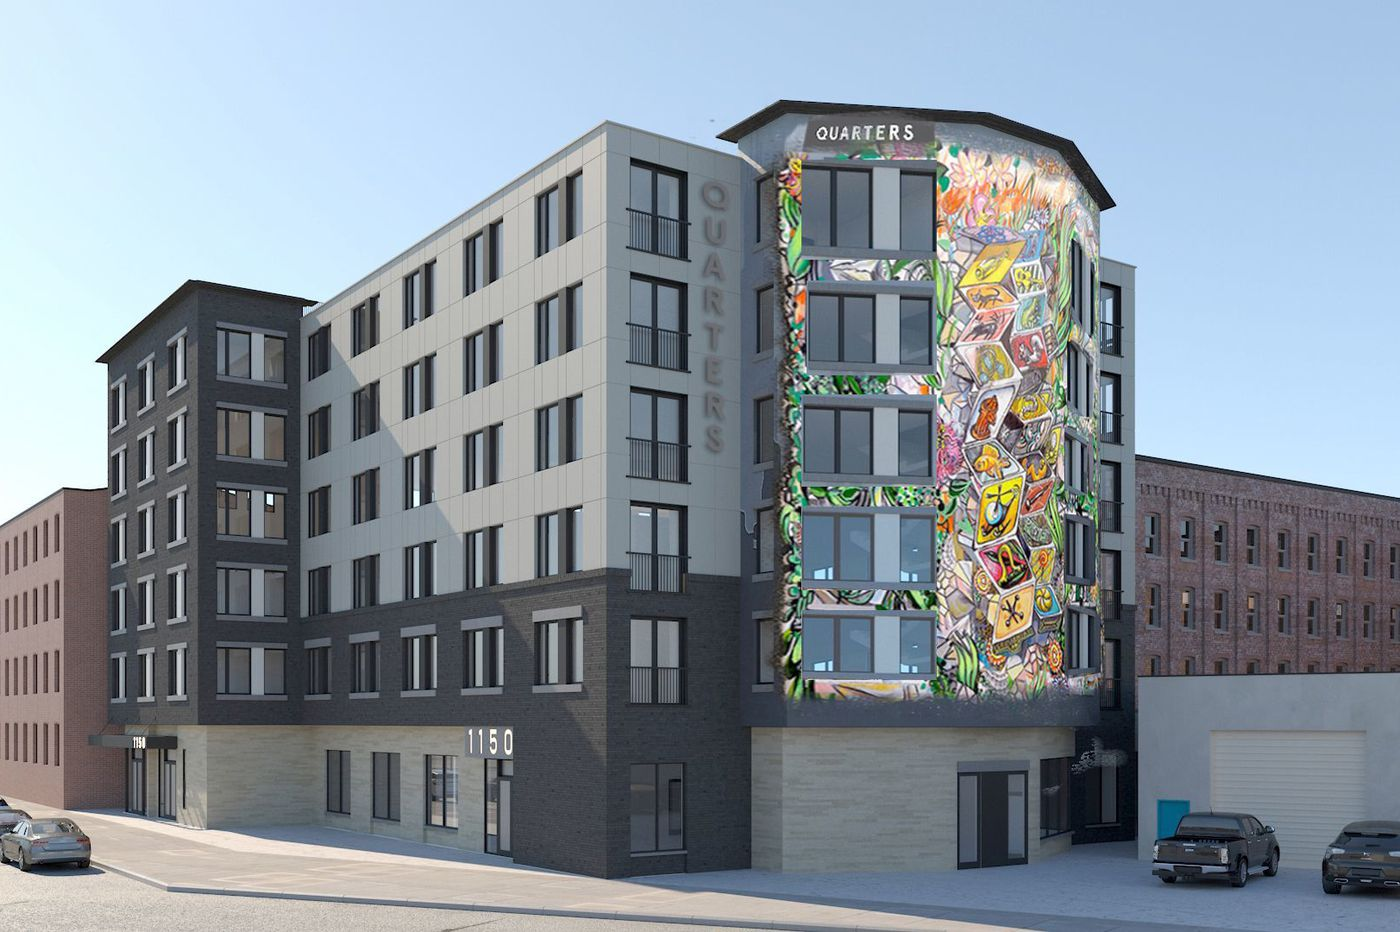 Dorm-like 'coliving' apartment building planned in Northern Liberties